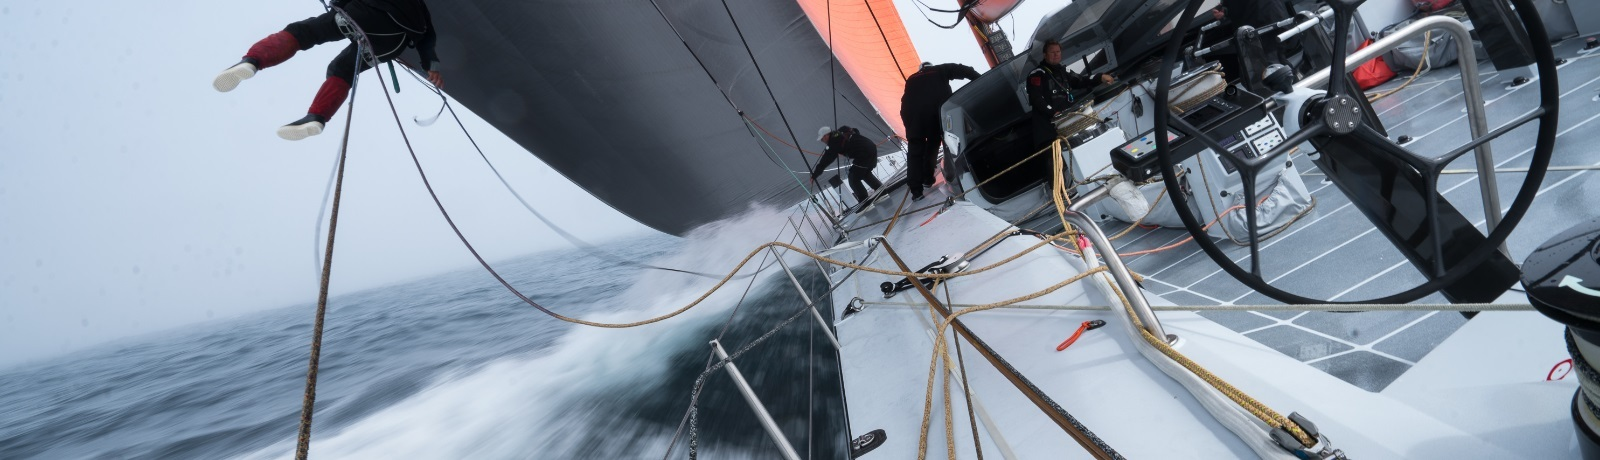 offshore-racing-sails